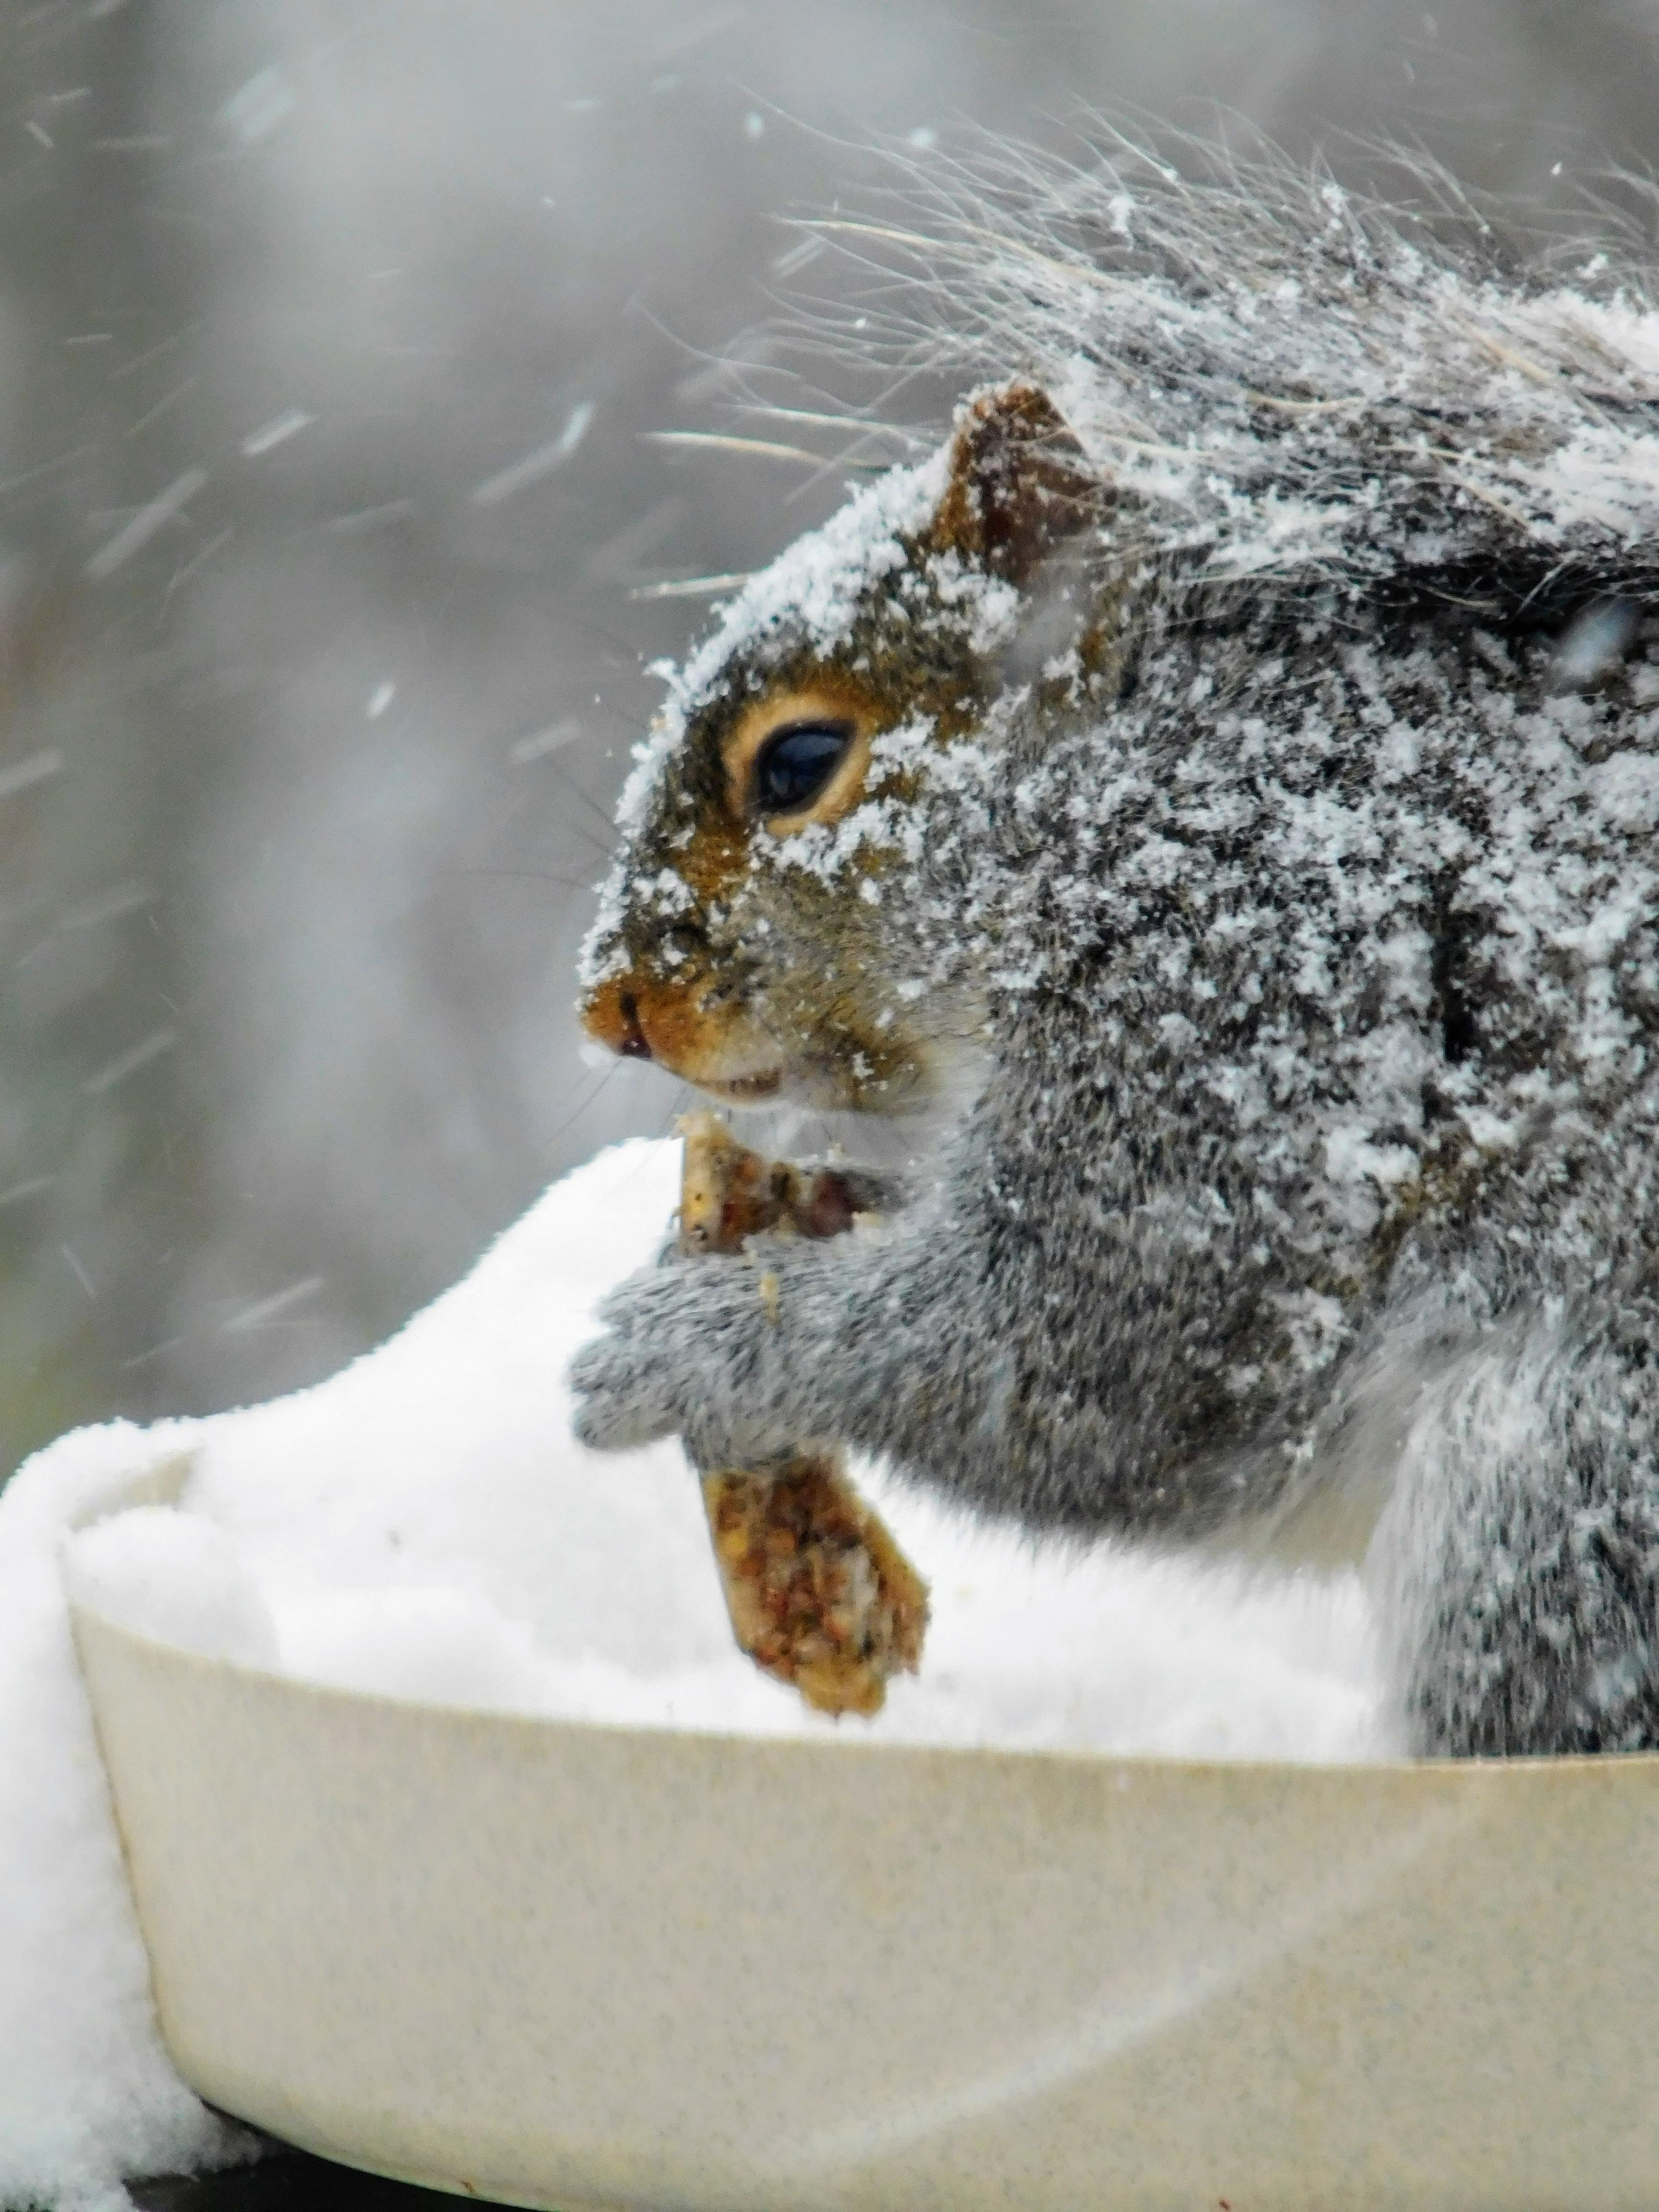 Squirrel enjoying a frozen chunk of seeds. January snow